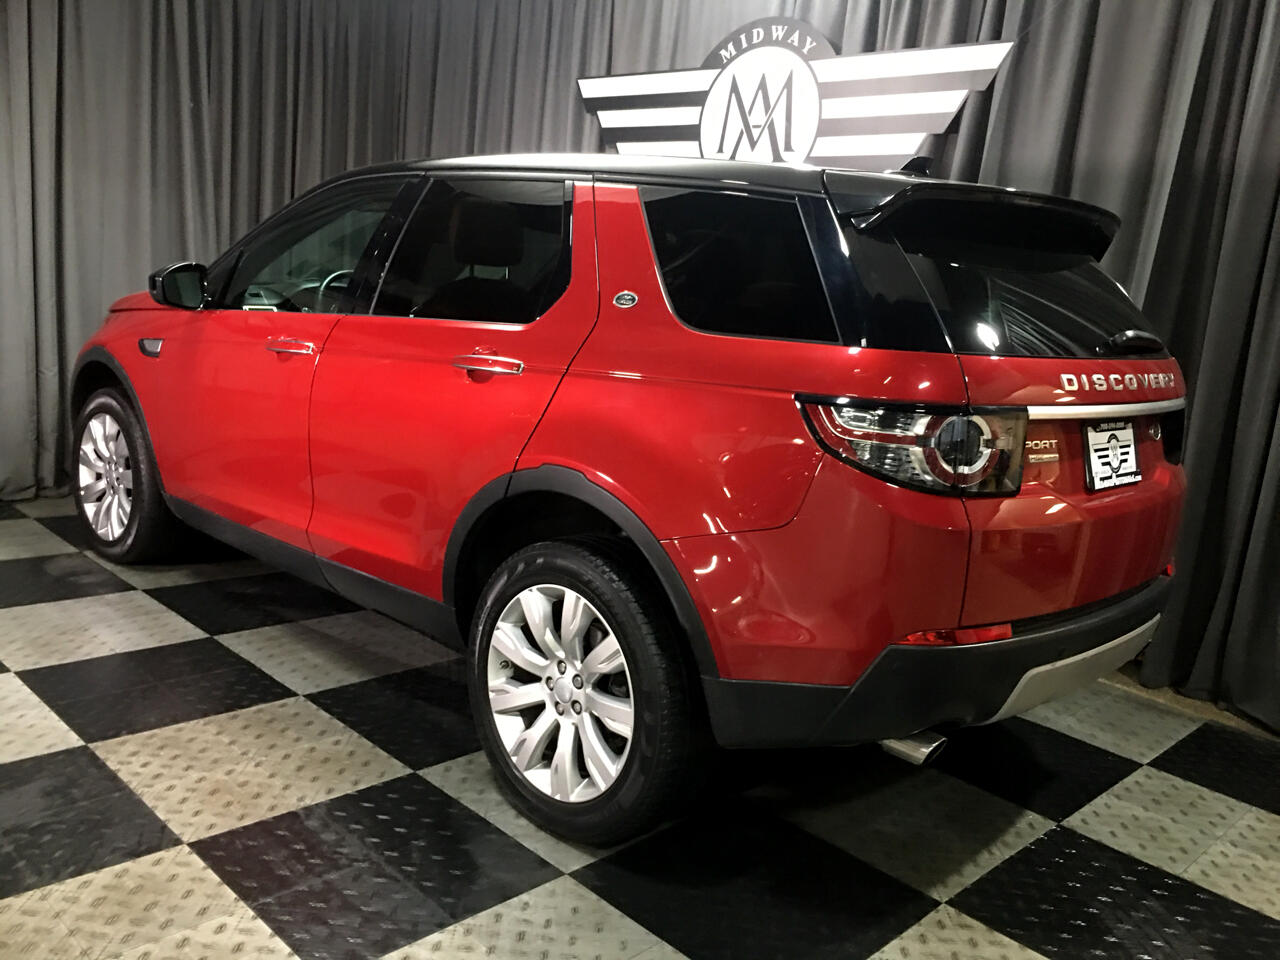 Pre-Owned 2016 Land Rover Discovery Sport AWD 4dr HSE LUX